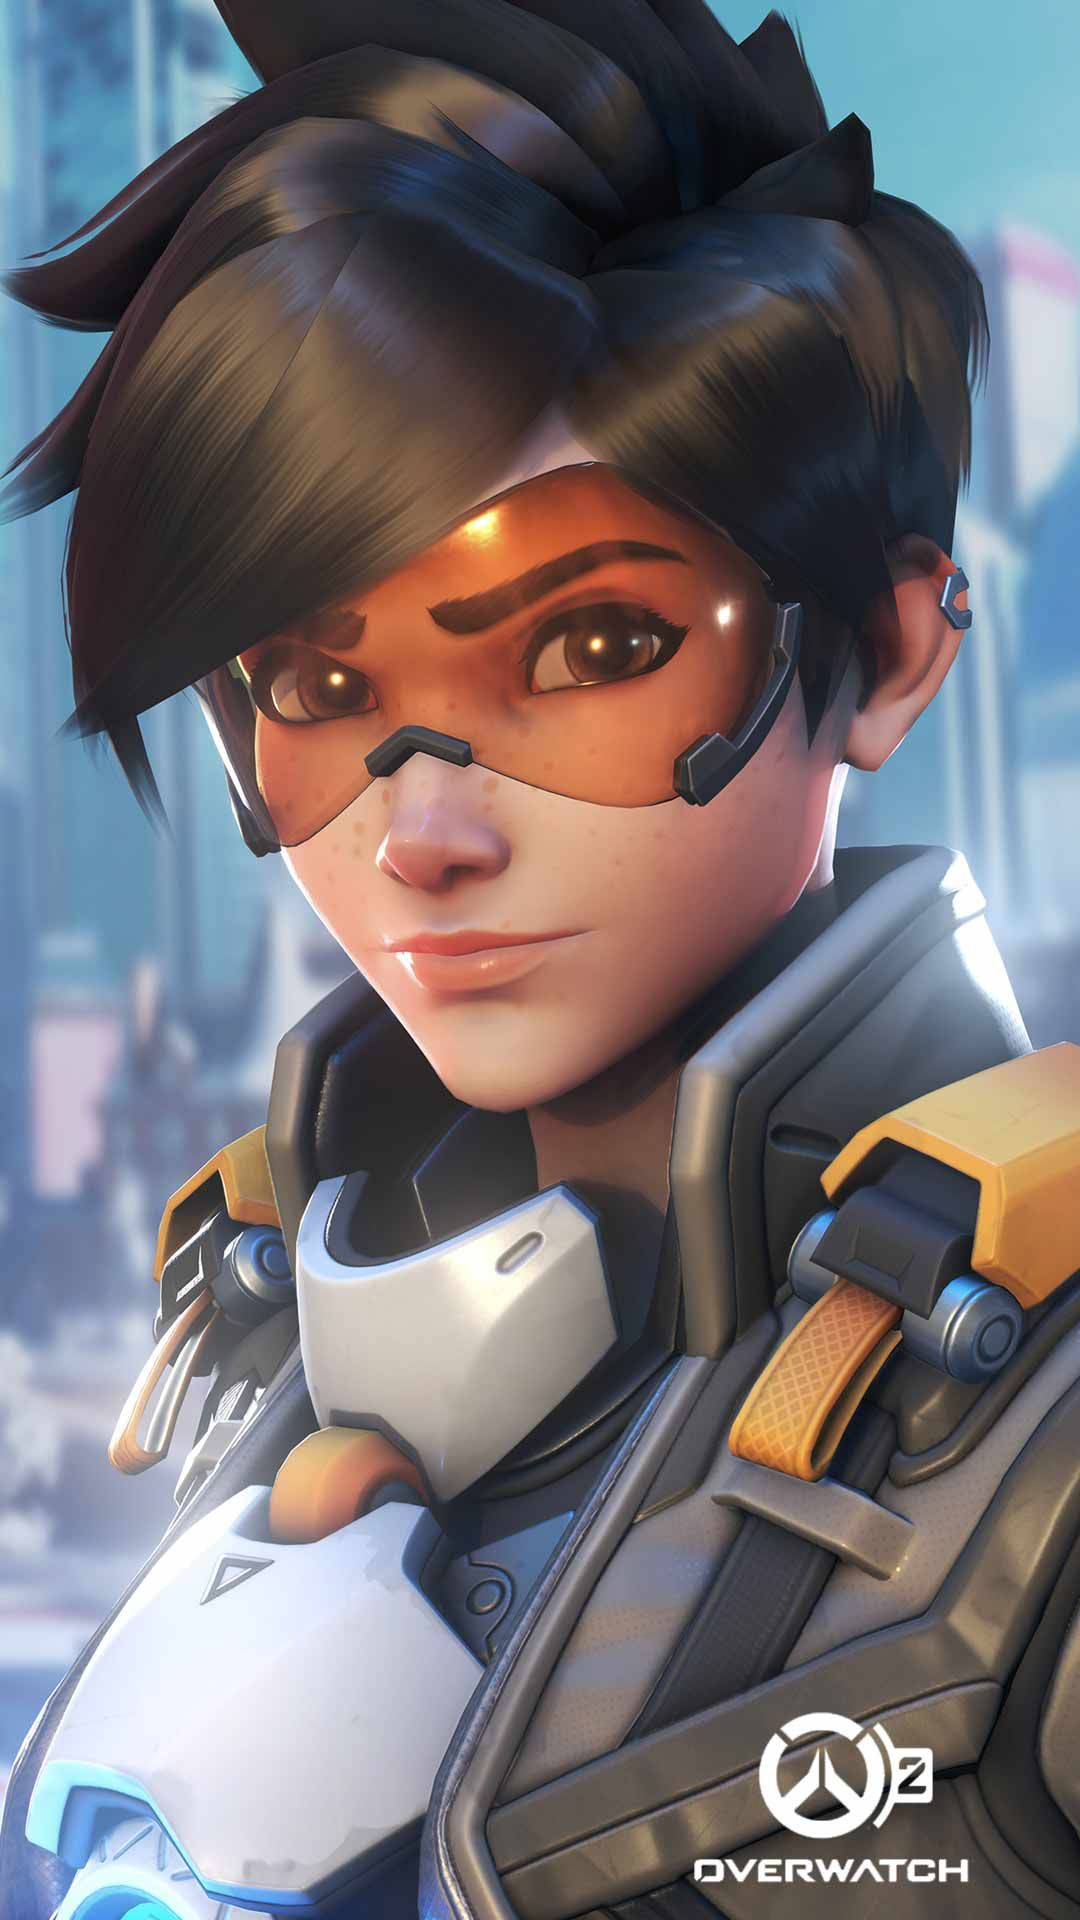 Overwatch 2 Wallpaper Hd Phone Backgrounds Characters Logo Art Poster For Iphone Android Screen Overwatch Posters Overwatch Tracer Overwatch